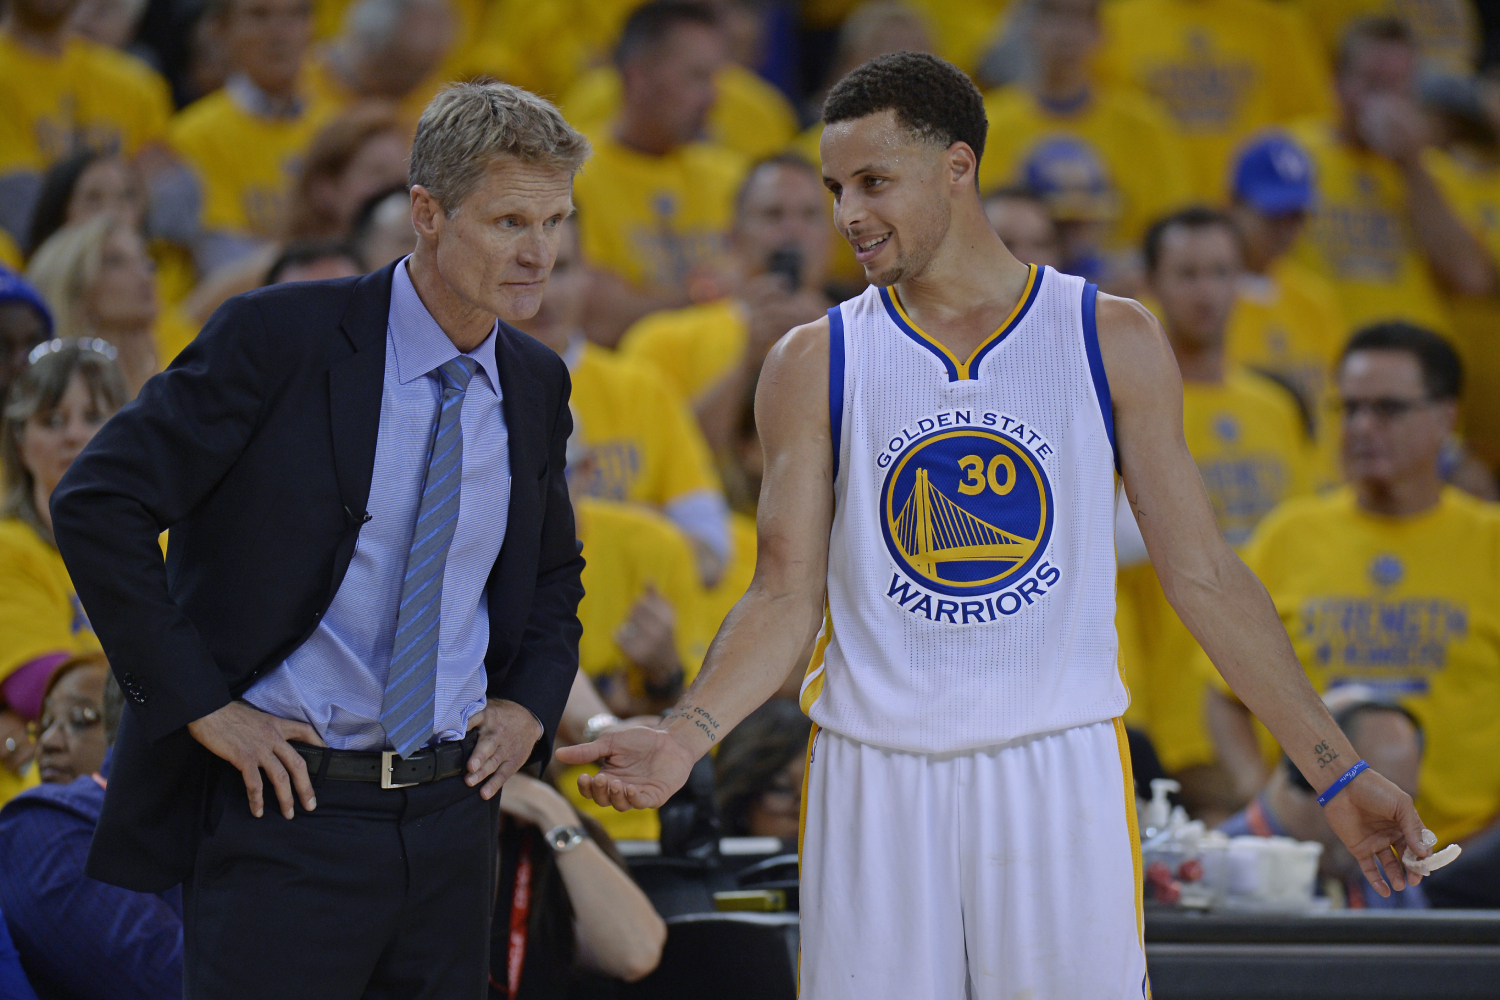 The Golden State Warriors had an awful 2019-20 season after five straight trips to the NBA Finals. However, they just got two big additions.